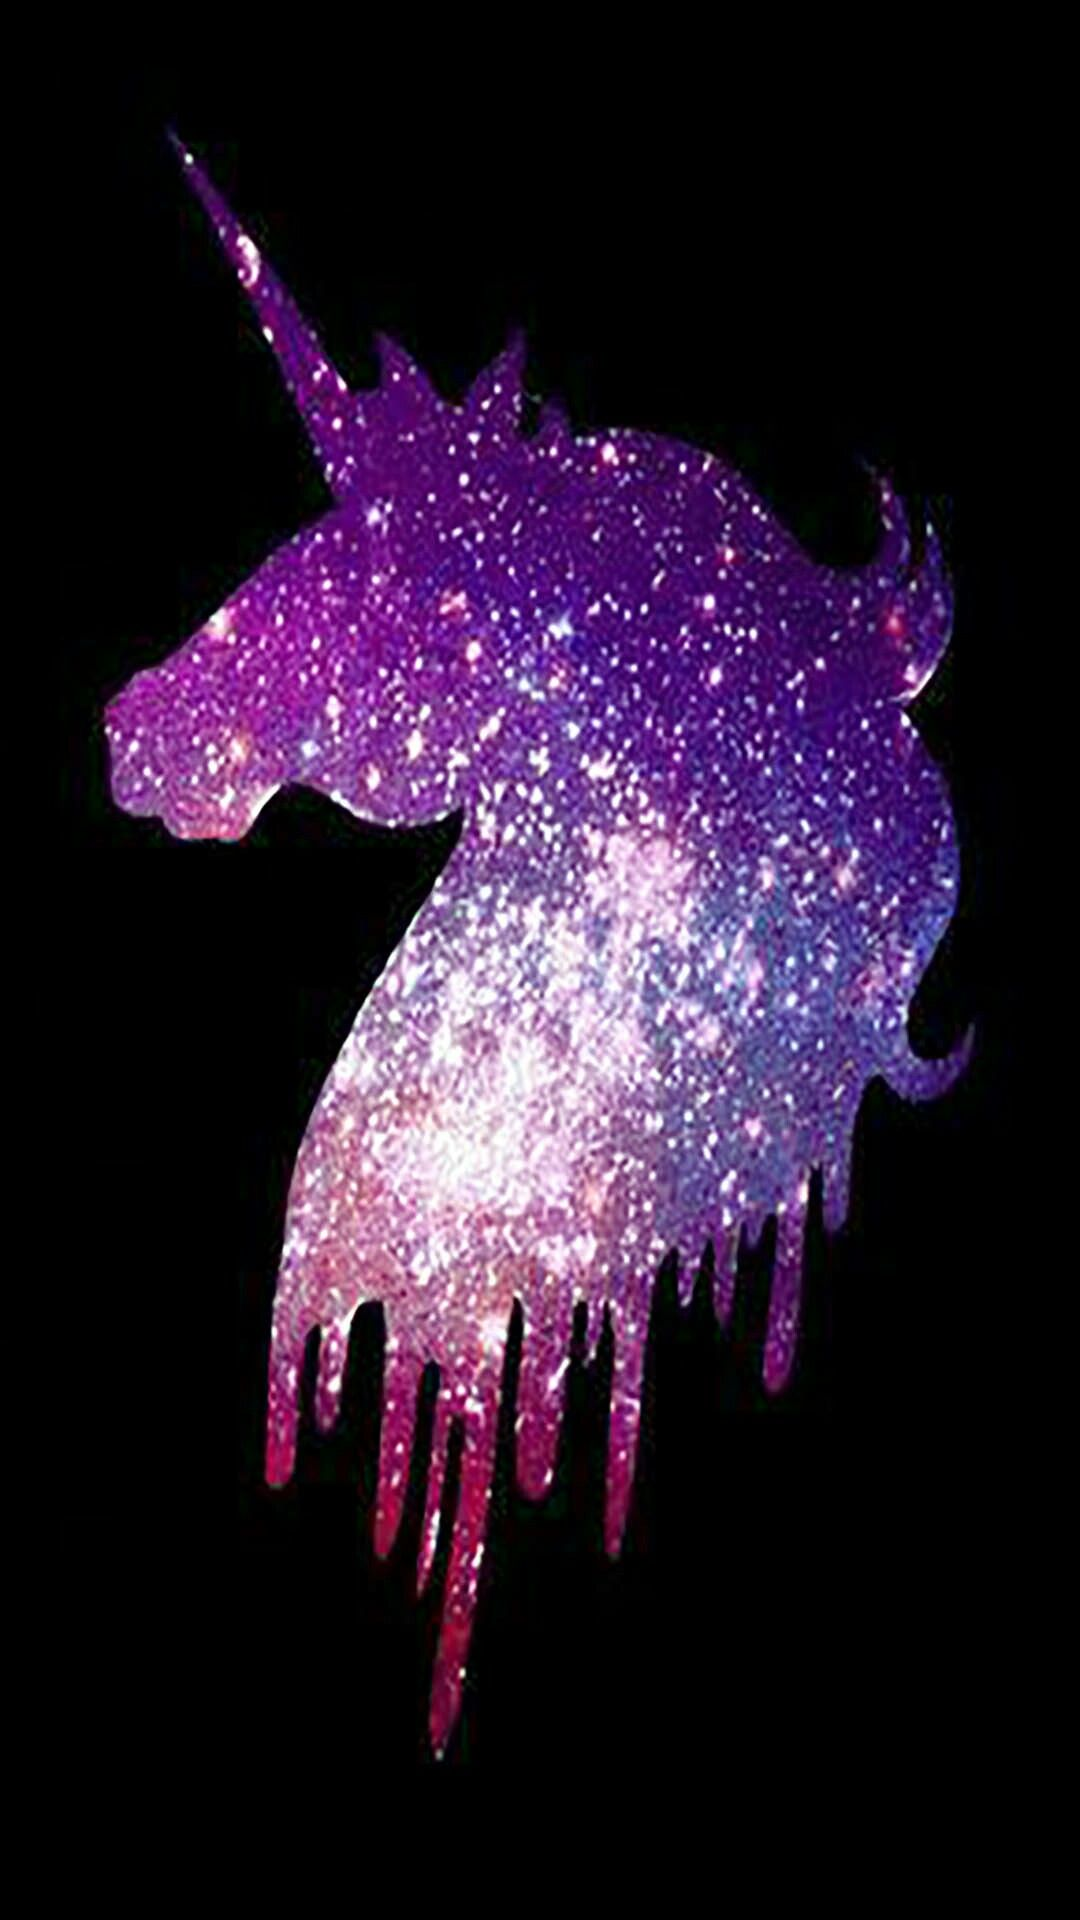 Pin By Isha On Wallpapers Unicorn Wallpaper Galaxy Wallpaper